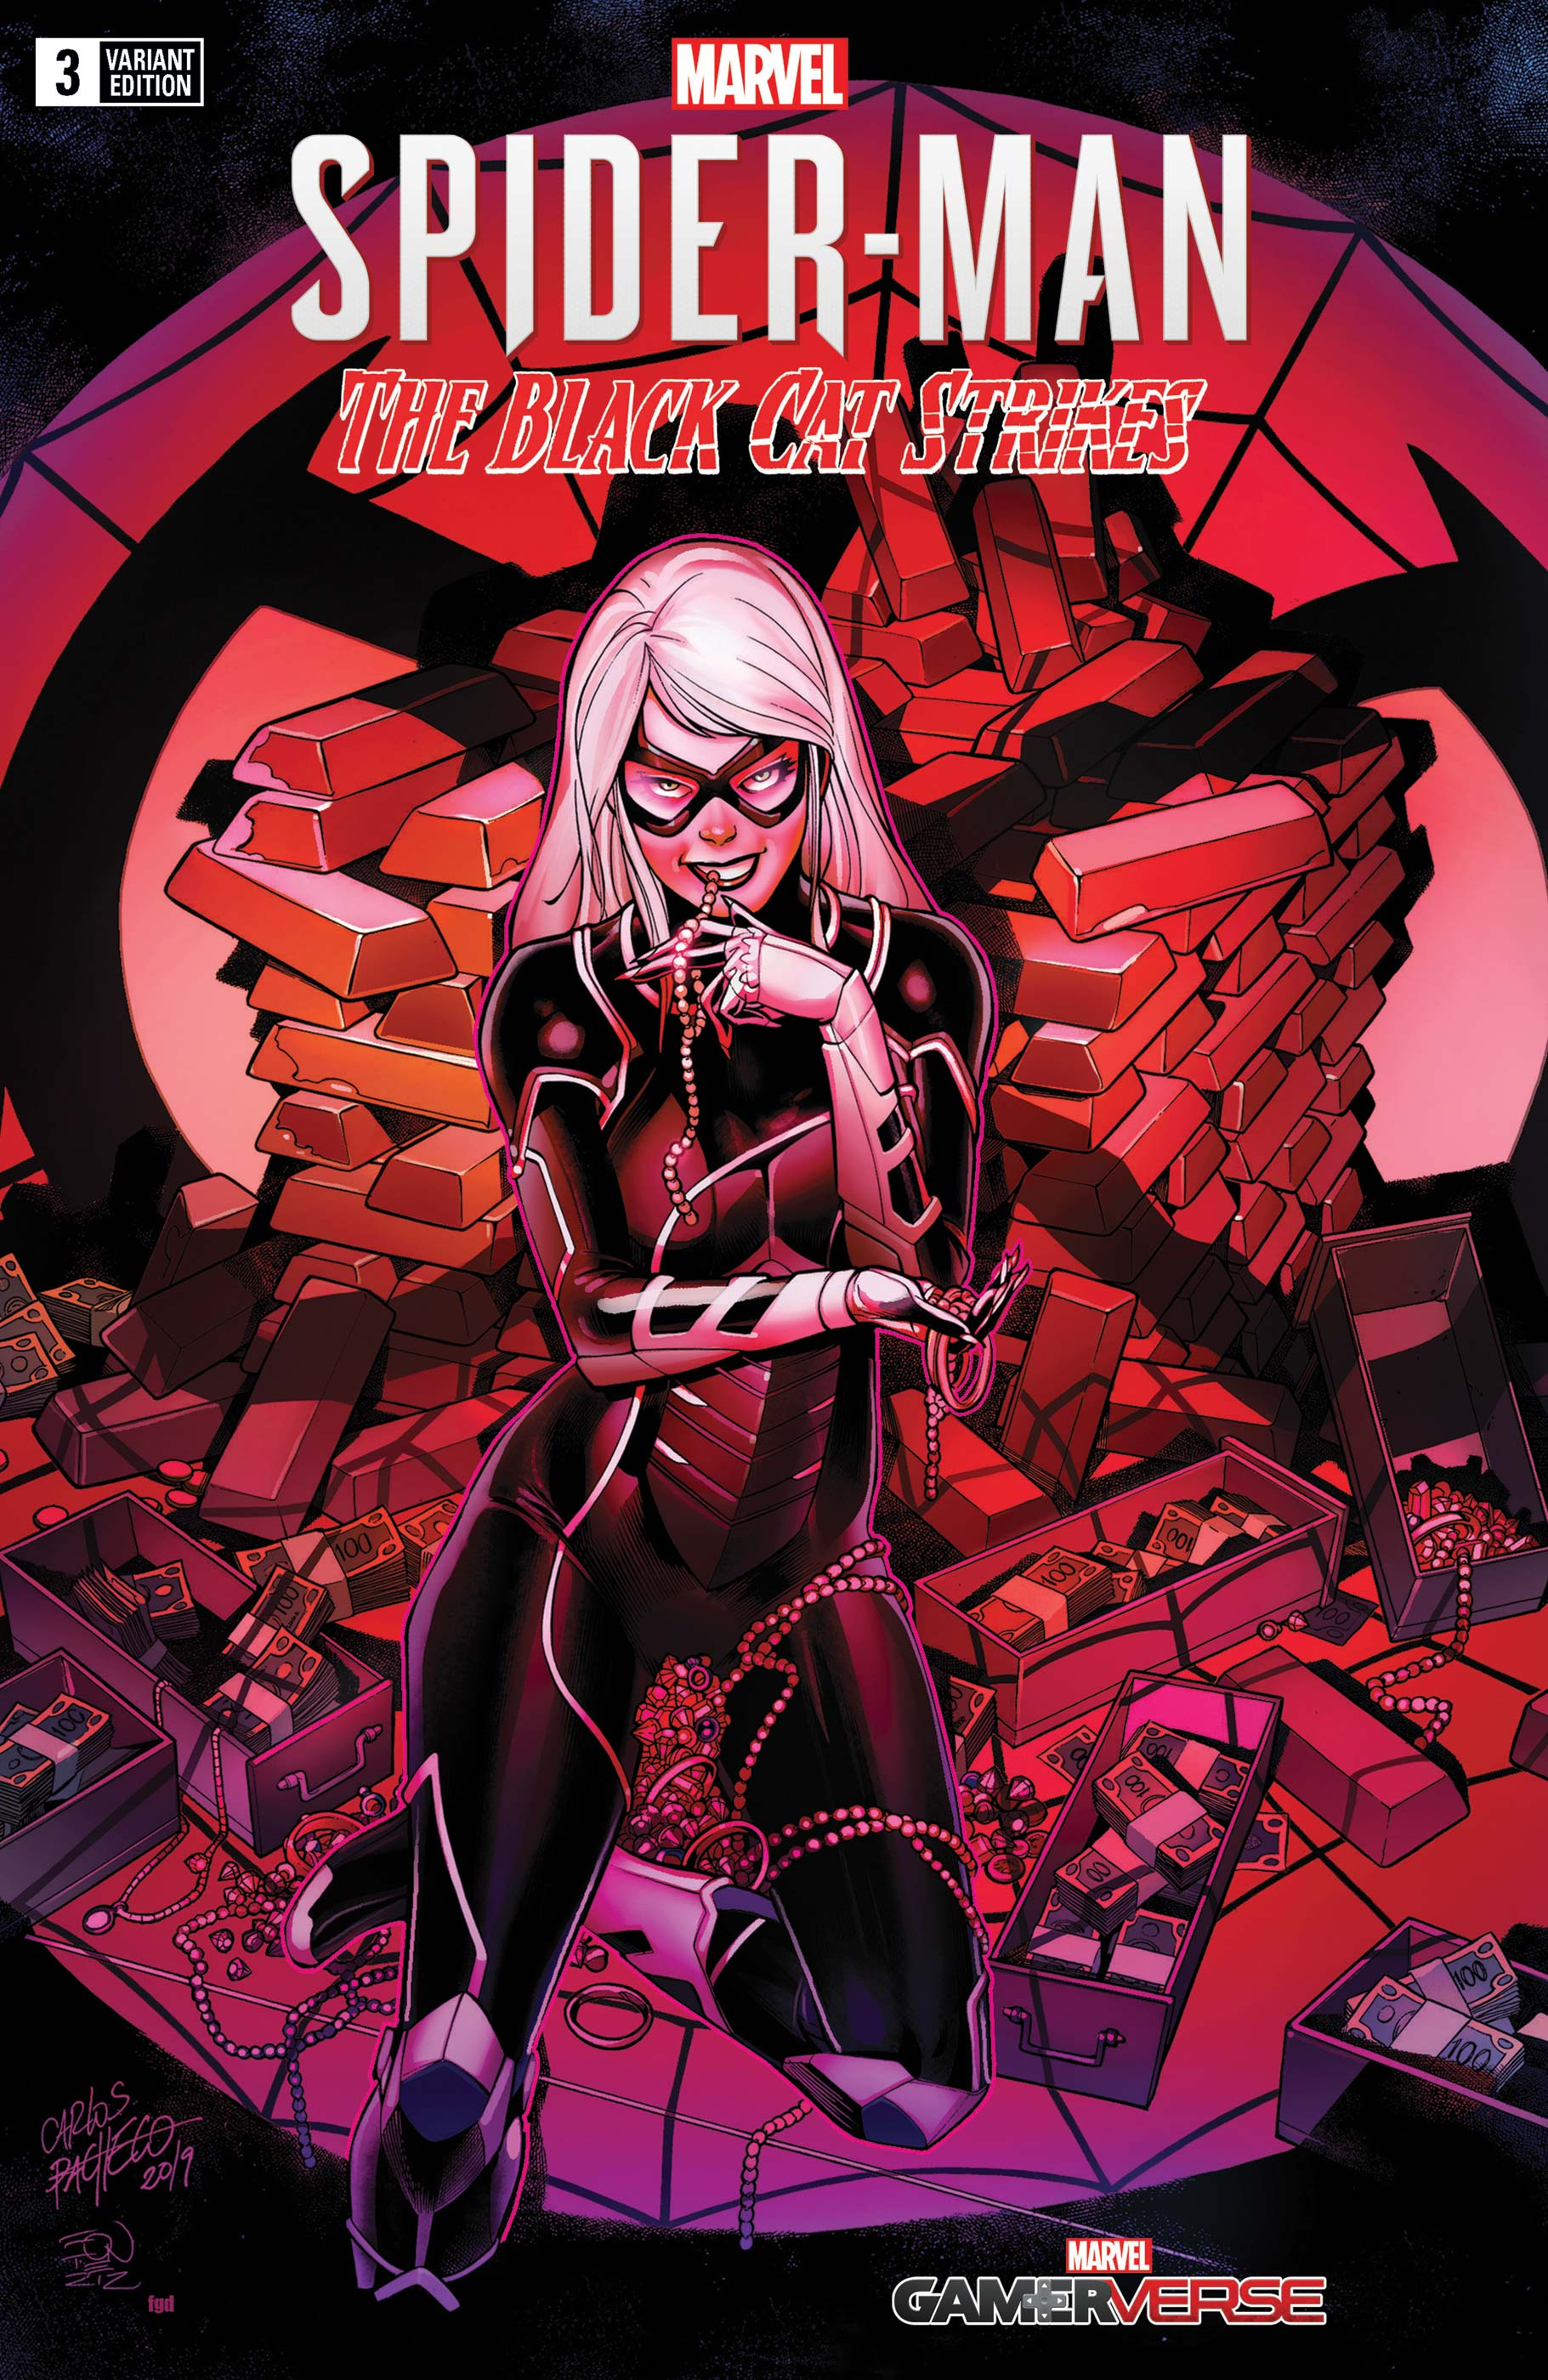 Marvel's Spider-Man: The Black Cat Strikes (2020) #3 (Variant)